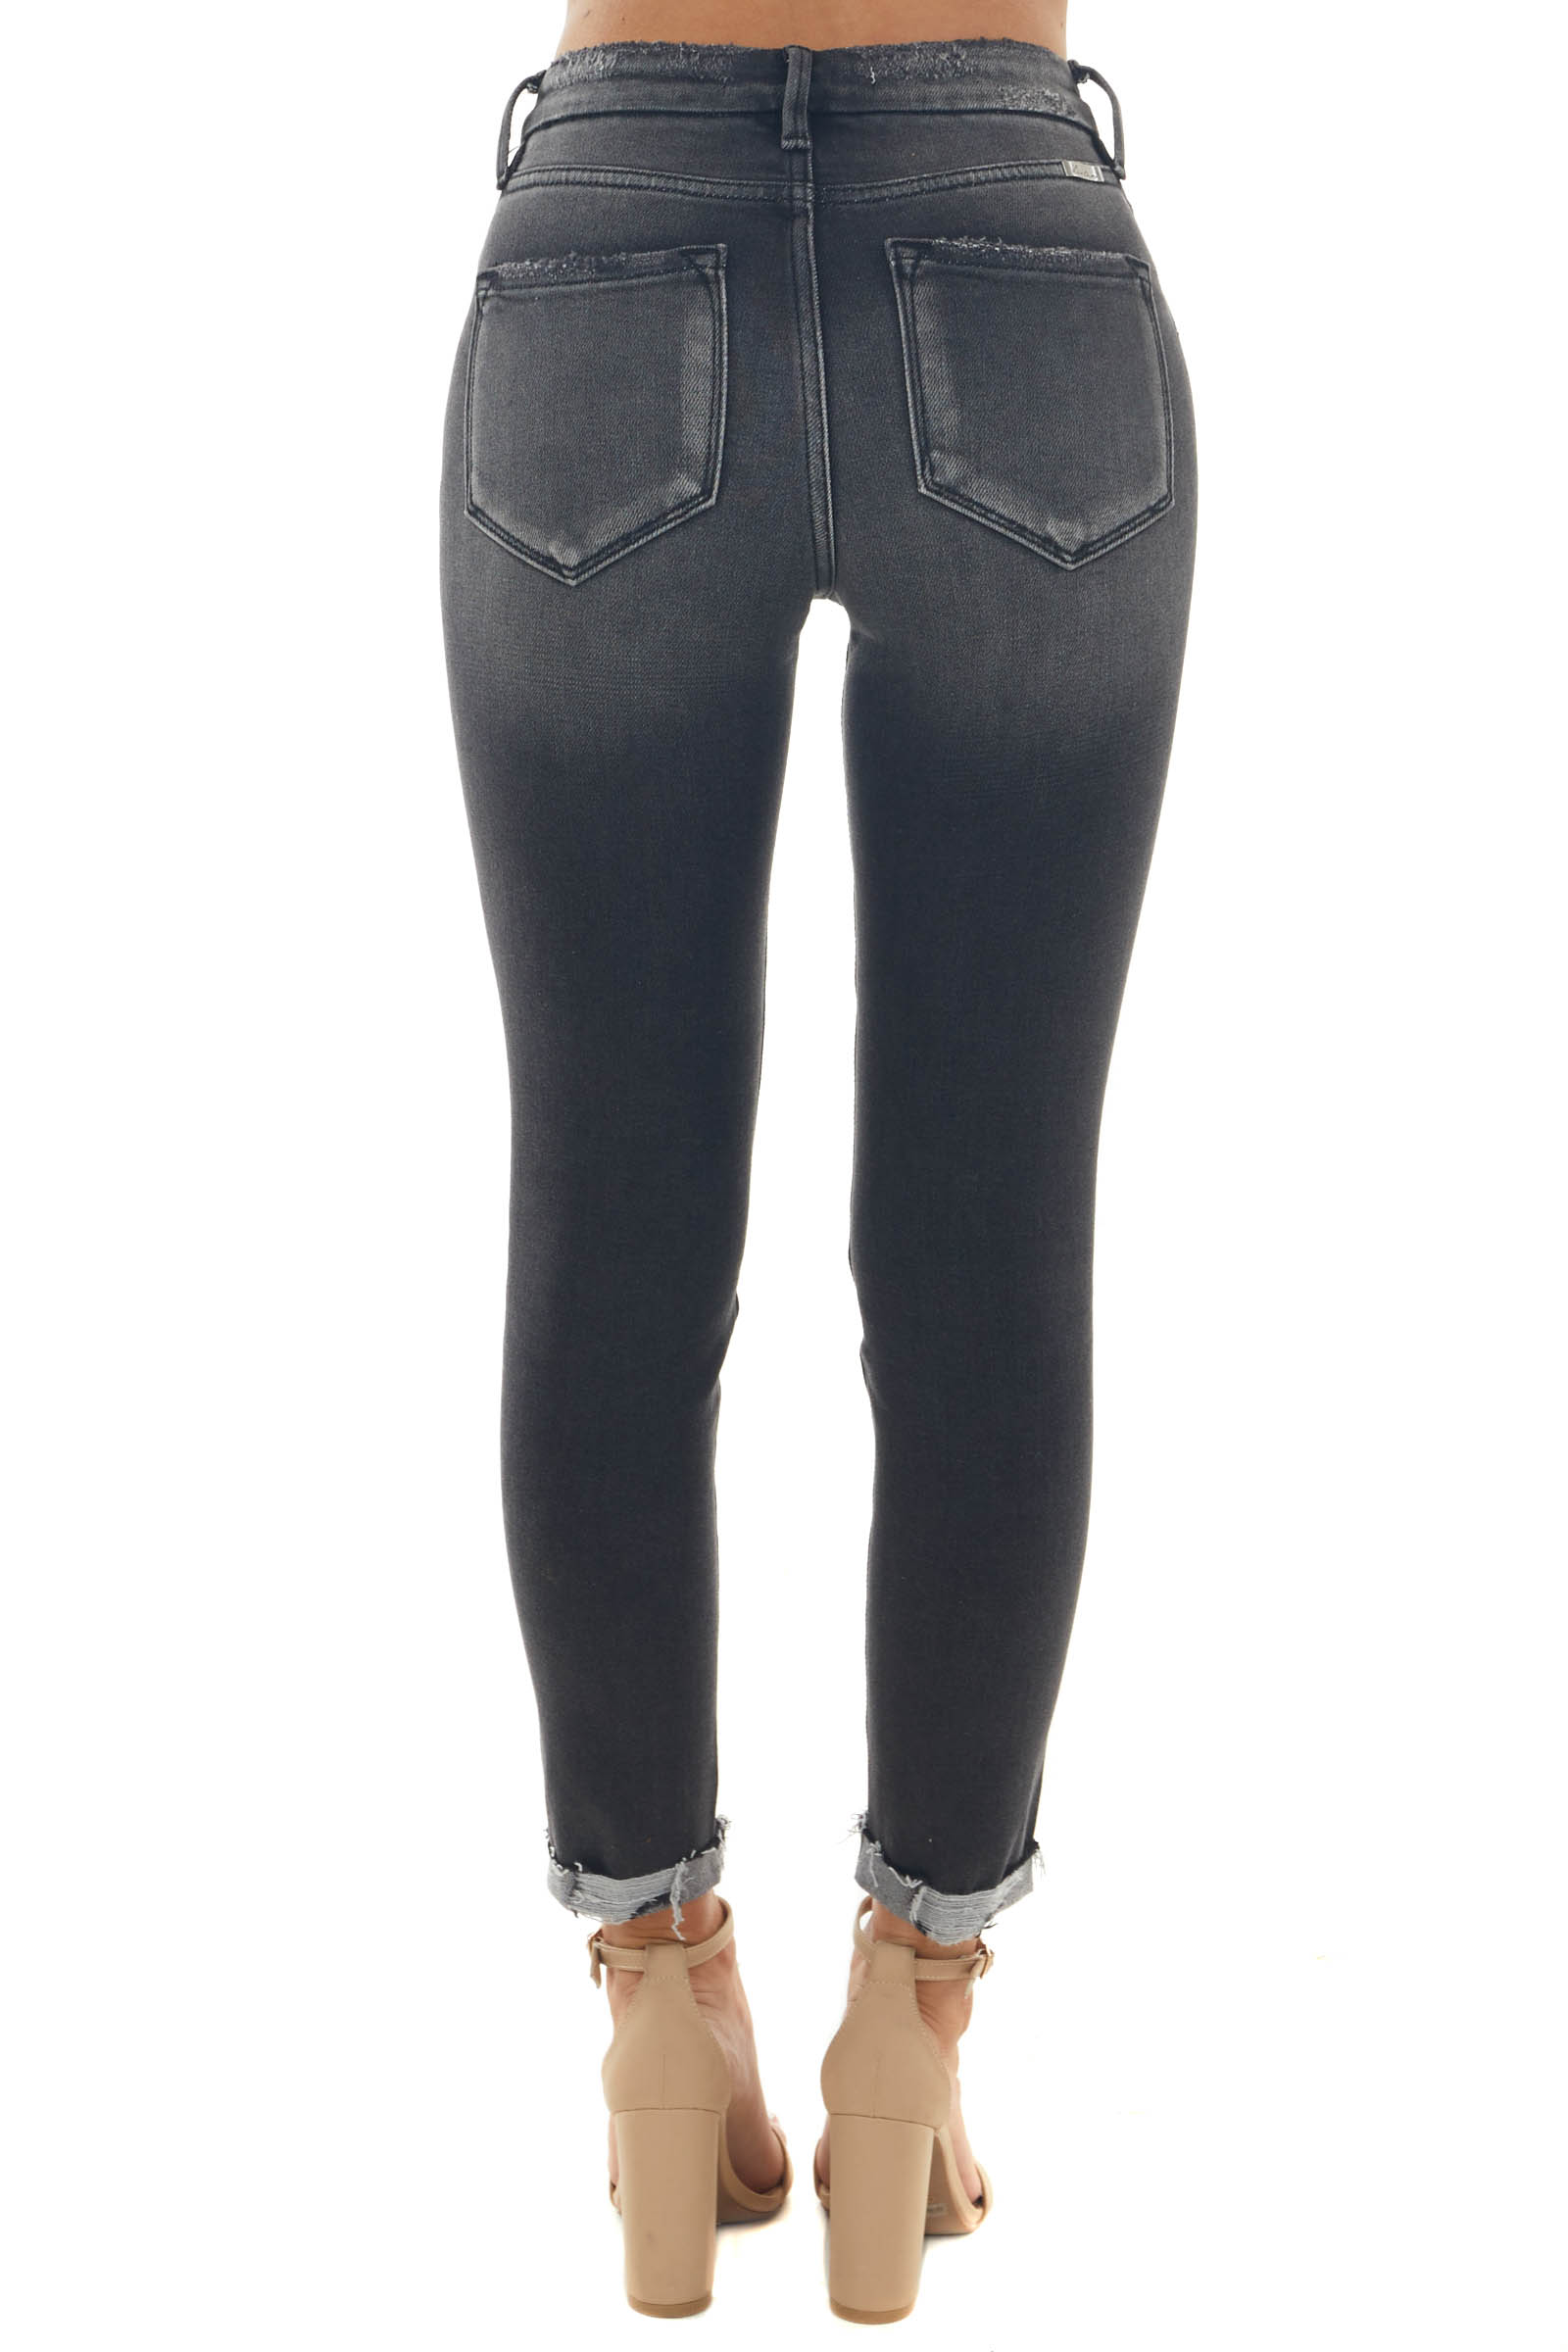 Charcoal Washed High Rise Distressed Jeans